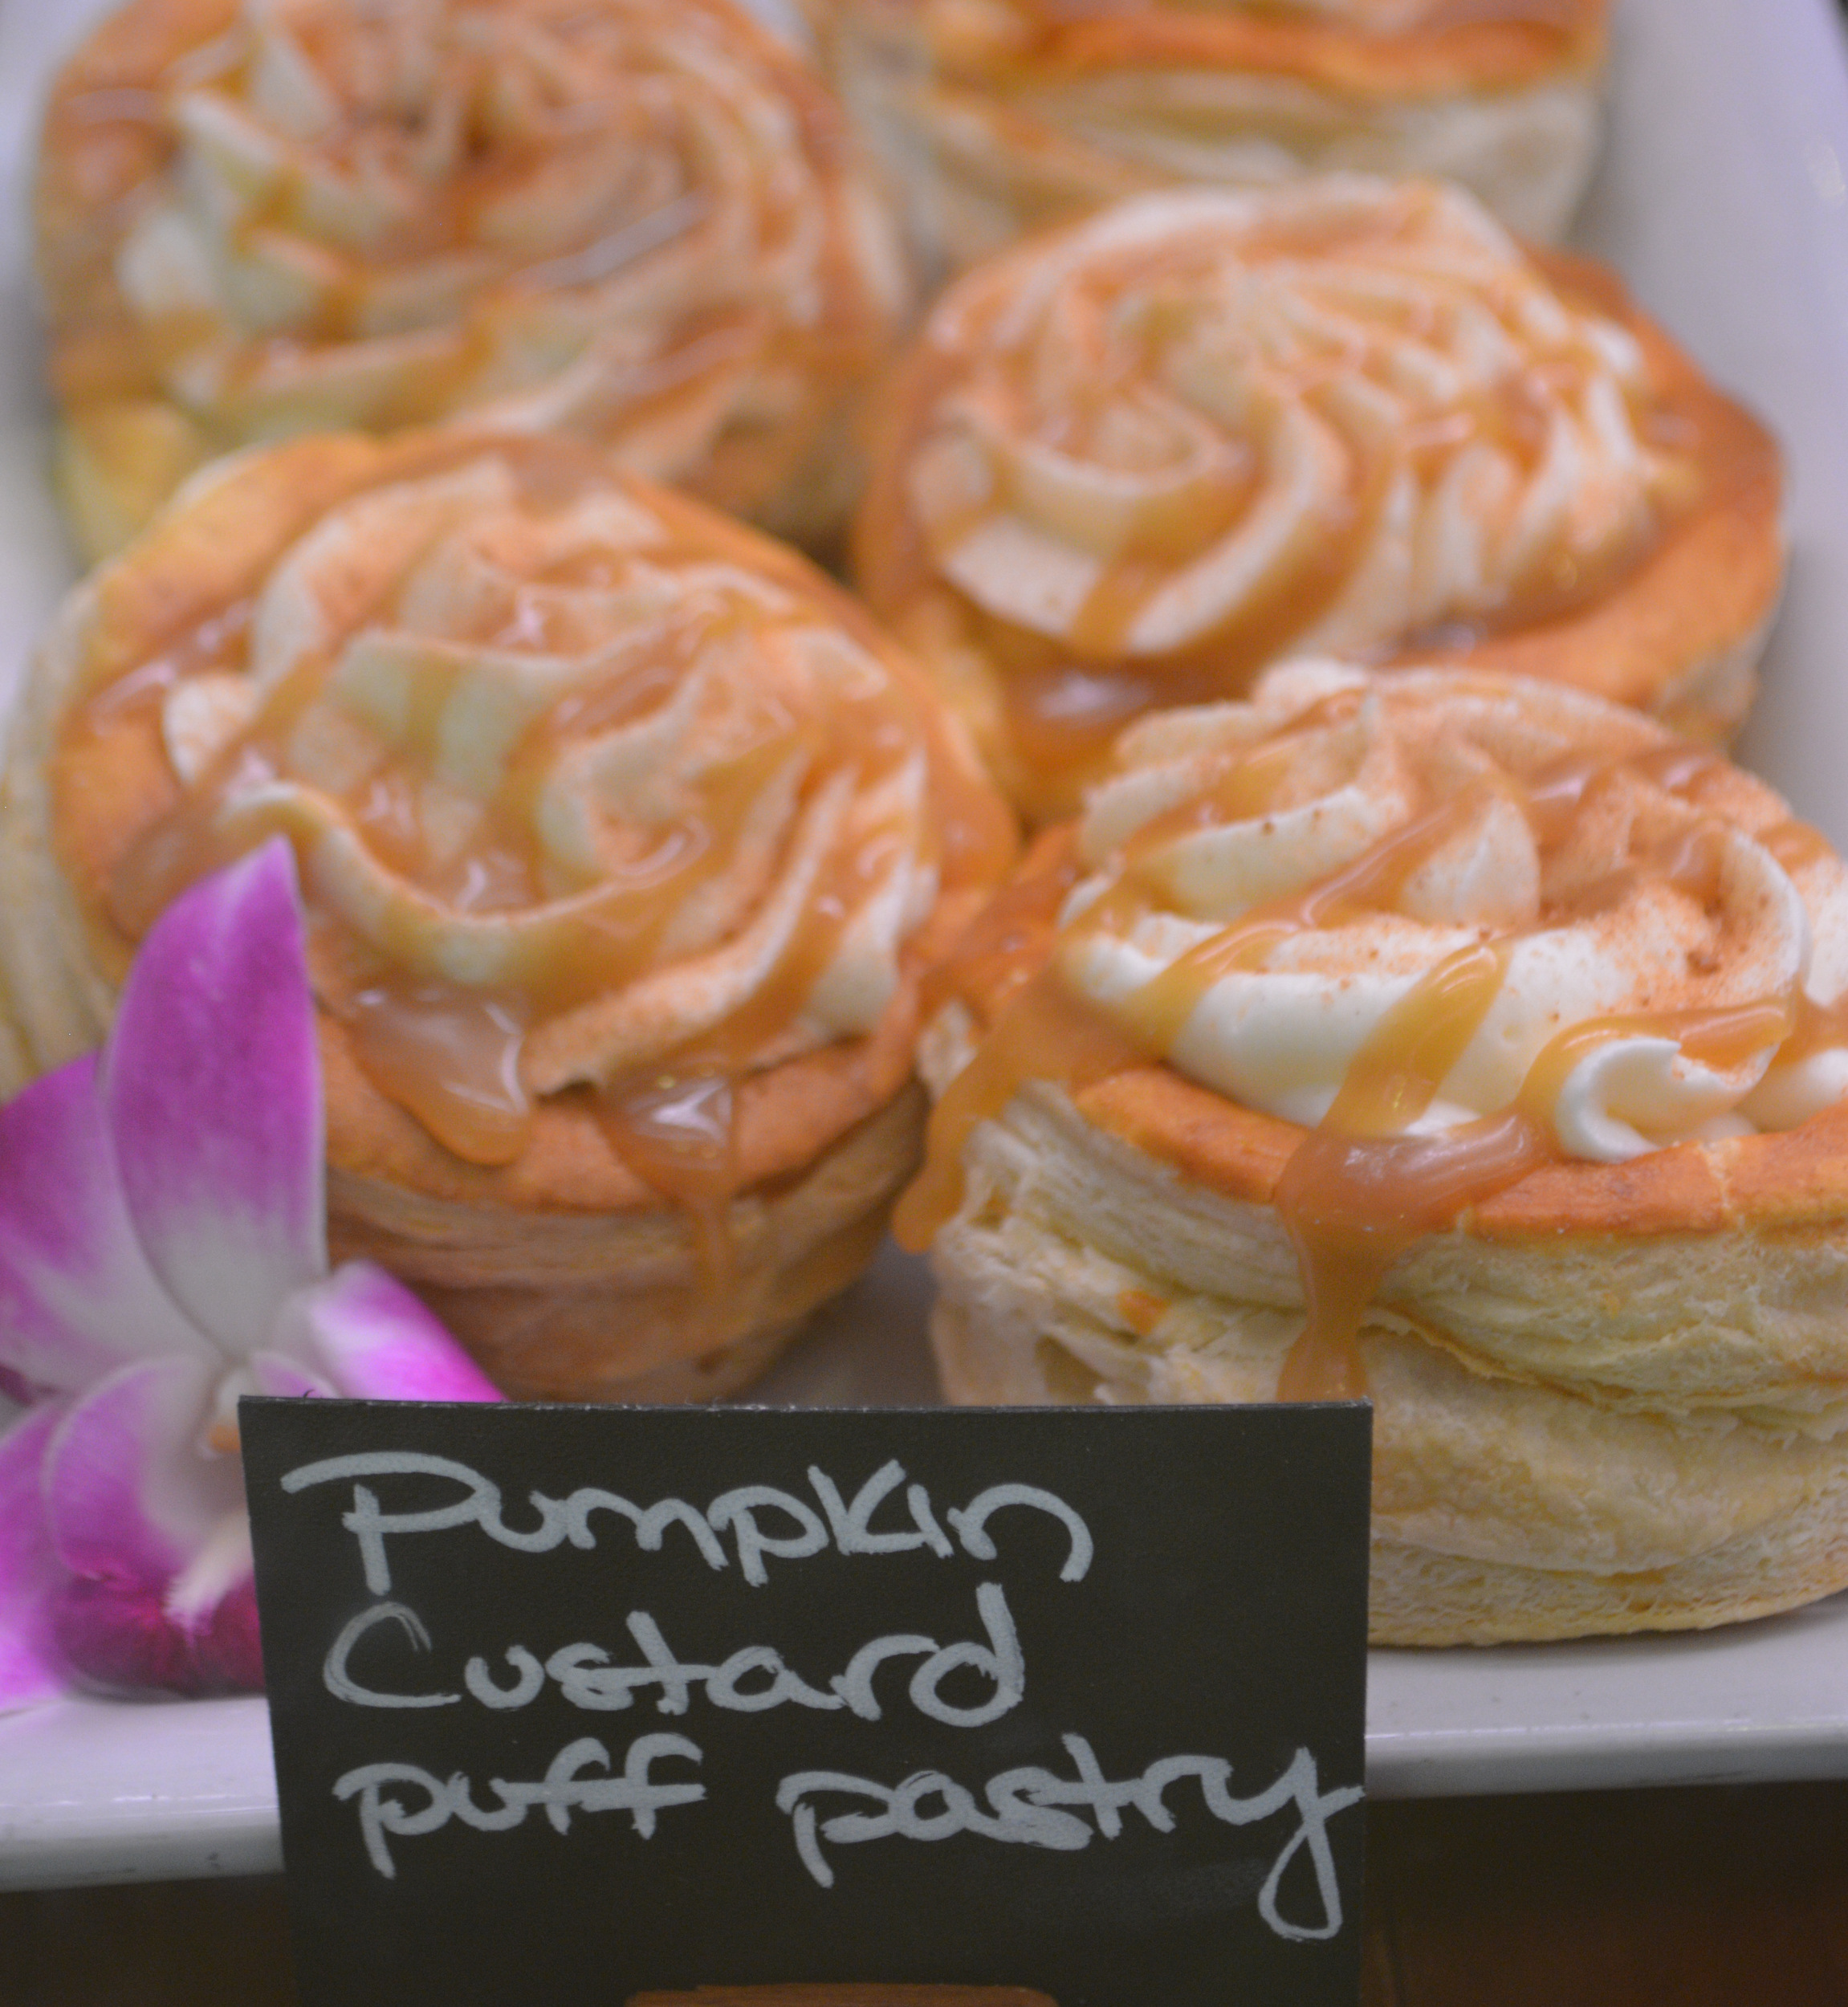 Pumpkin Custard Puff Pastry